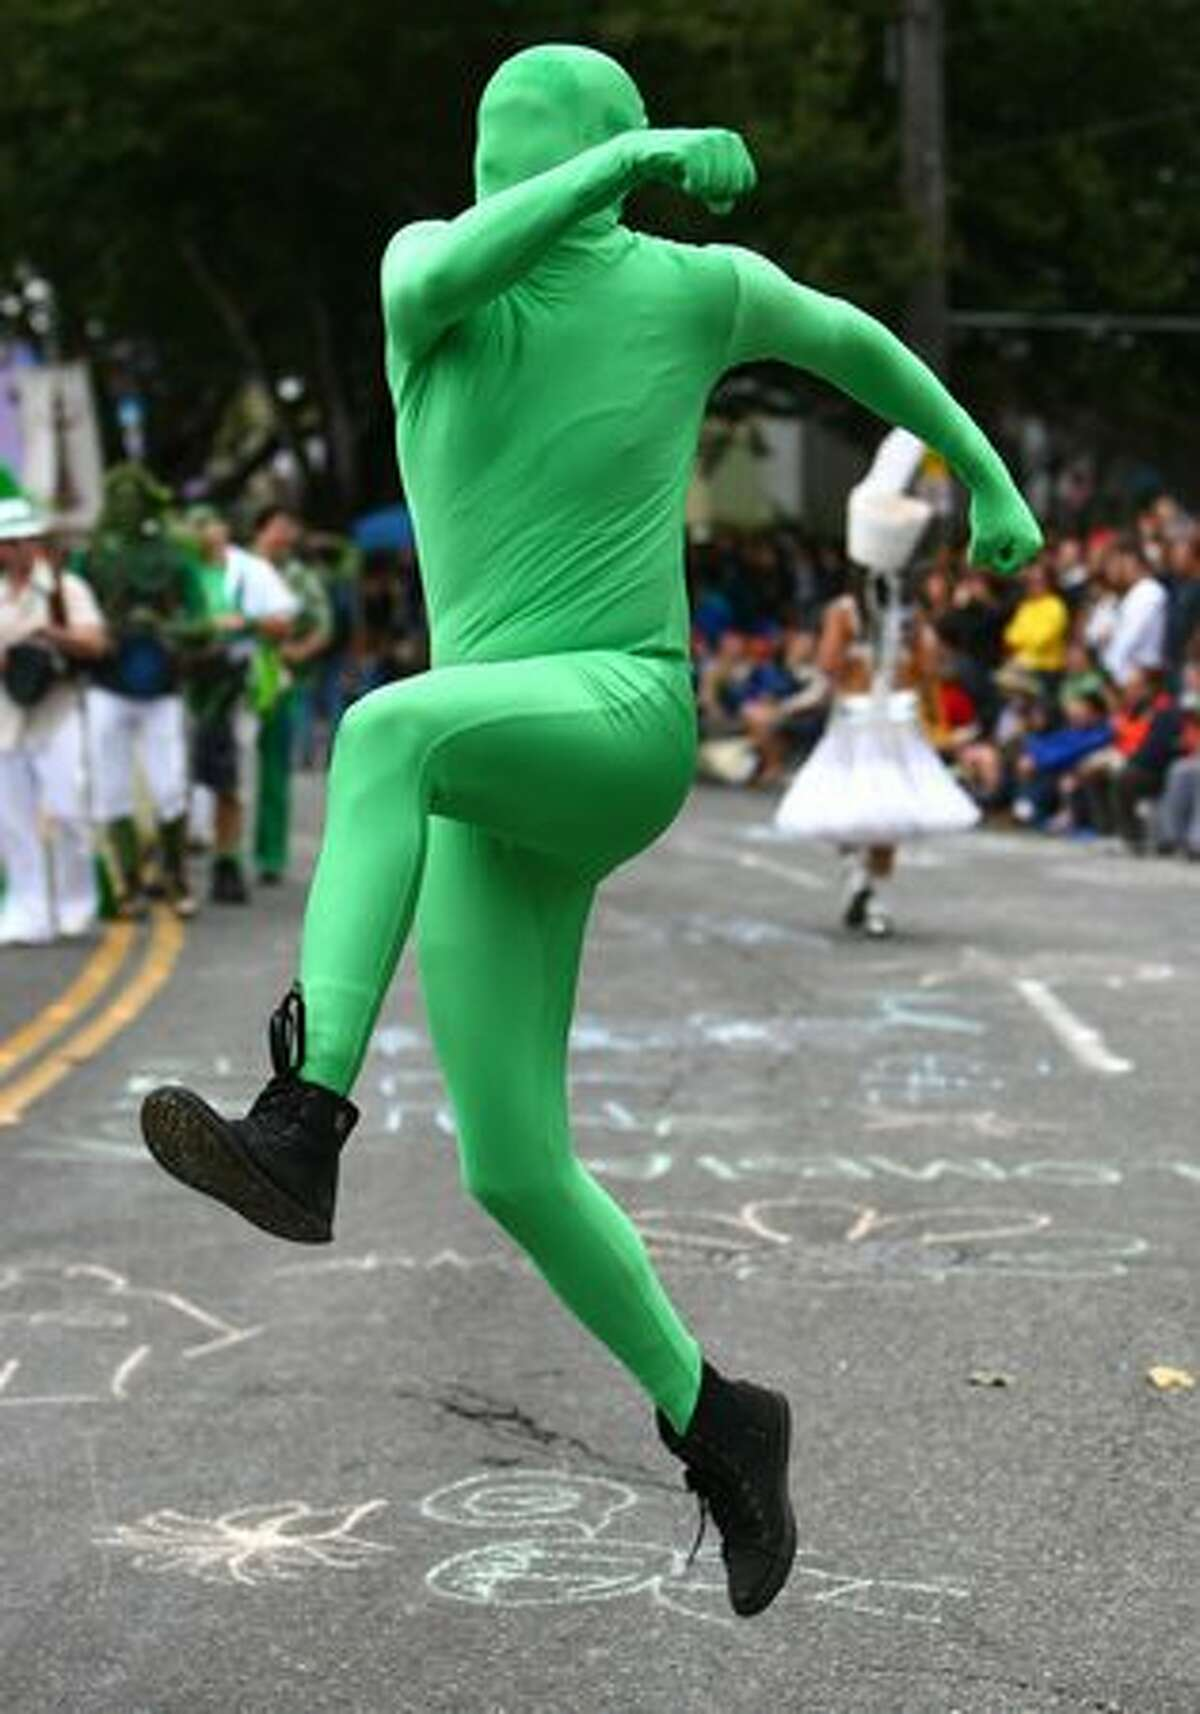 A green man runs across North 36th Street during the Fremont Solstice Parade on Saturday June 19, 2010 in Seattle.